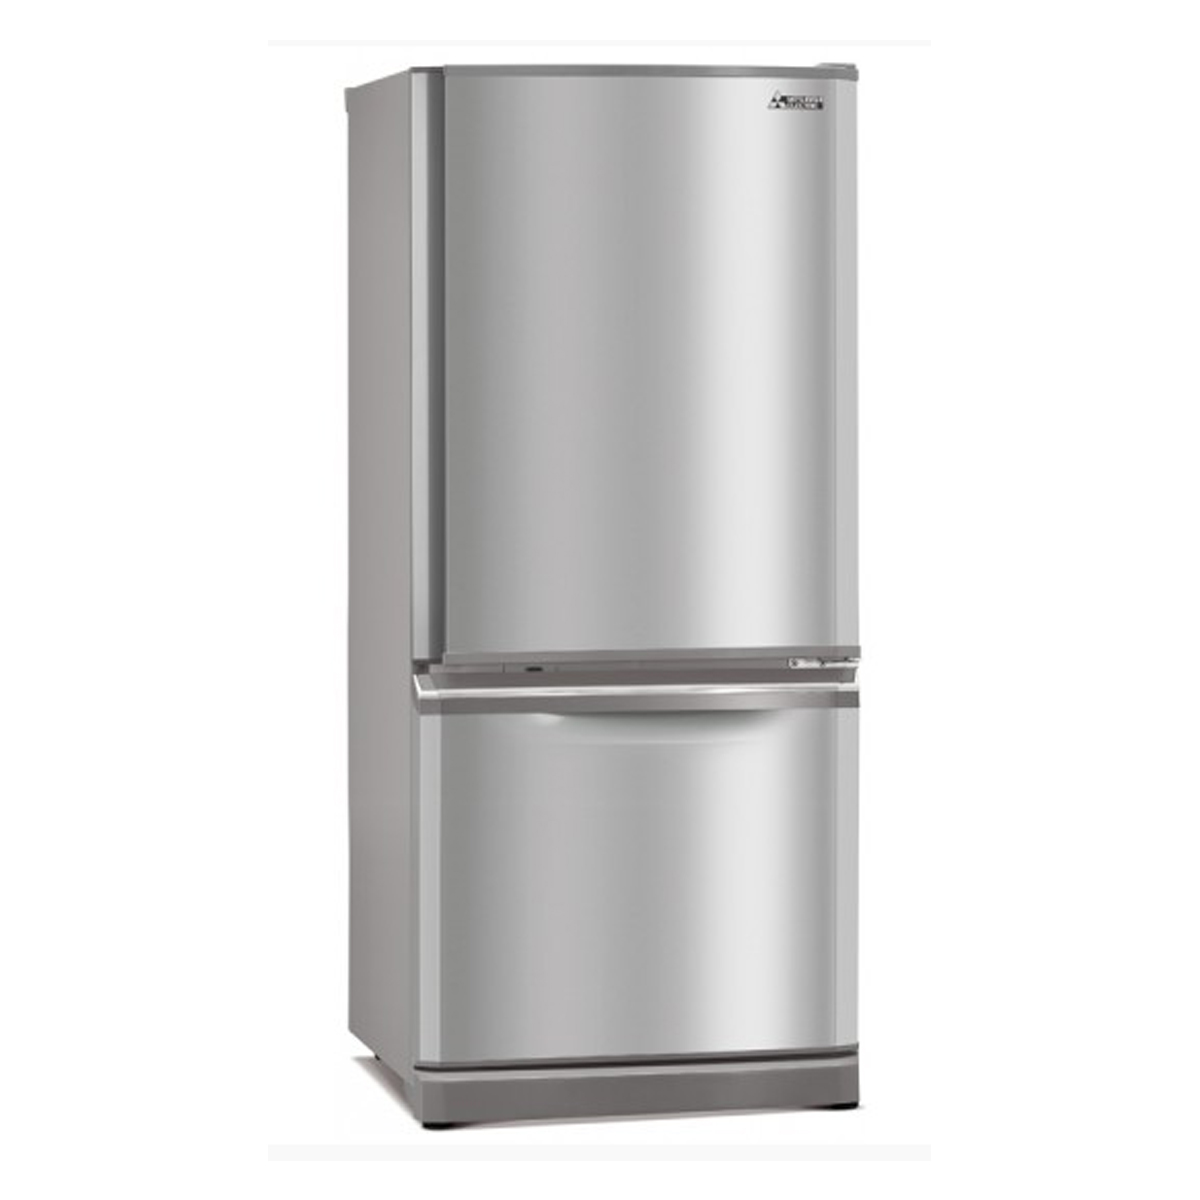 Mitsubishi MR-BF390C-ST-A 390 Litre Stainless Steel Bottom Mount Fridge